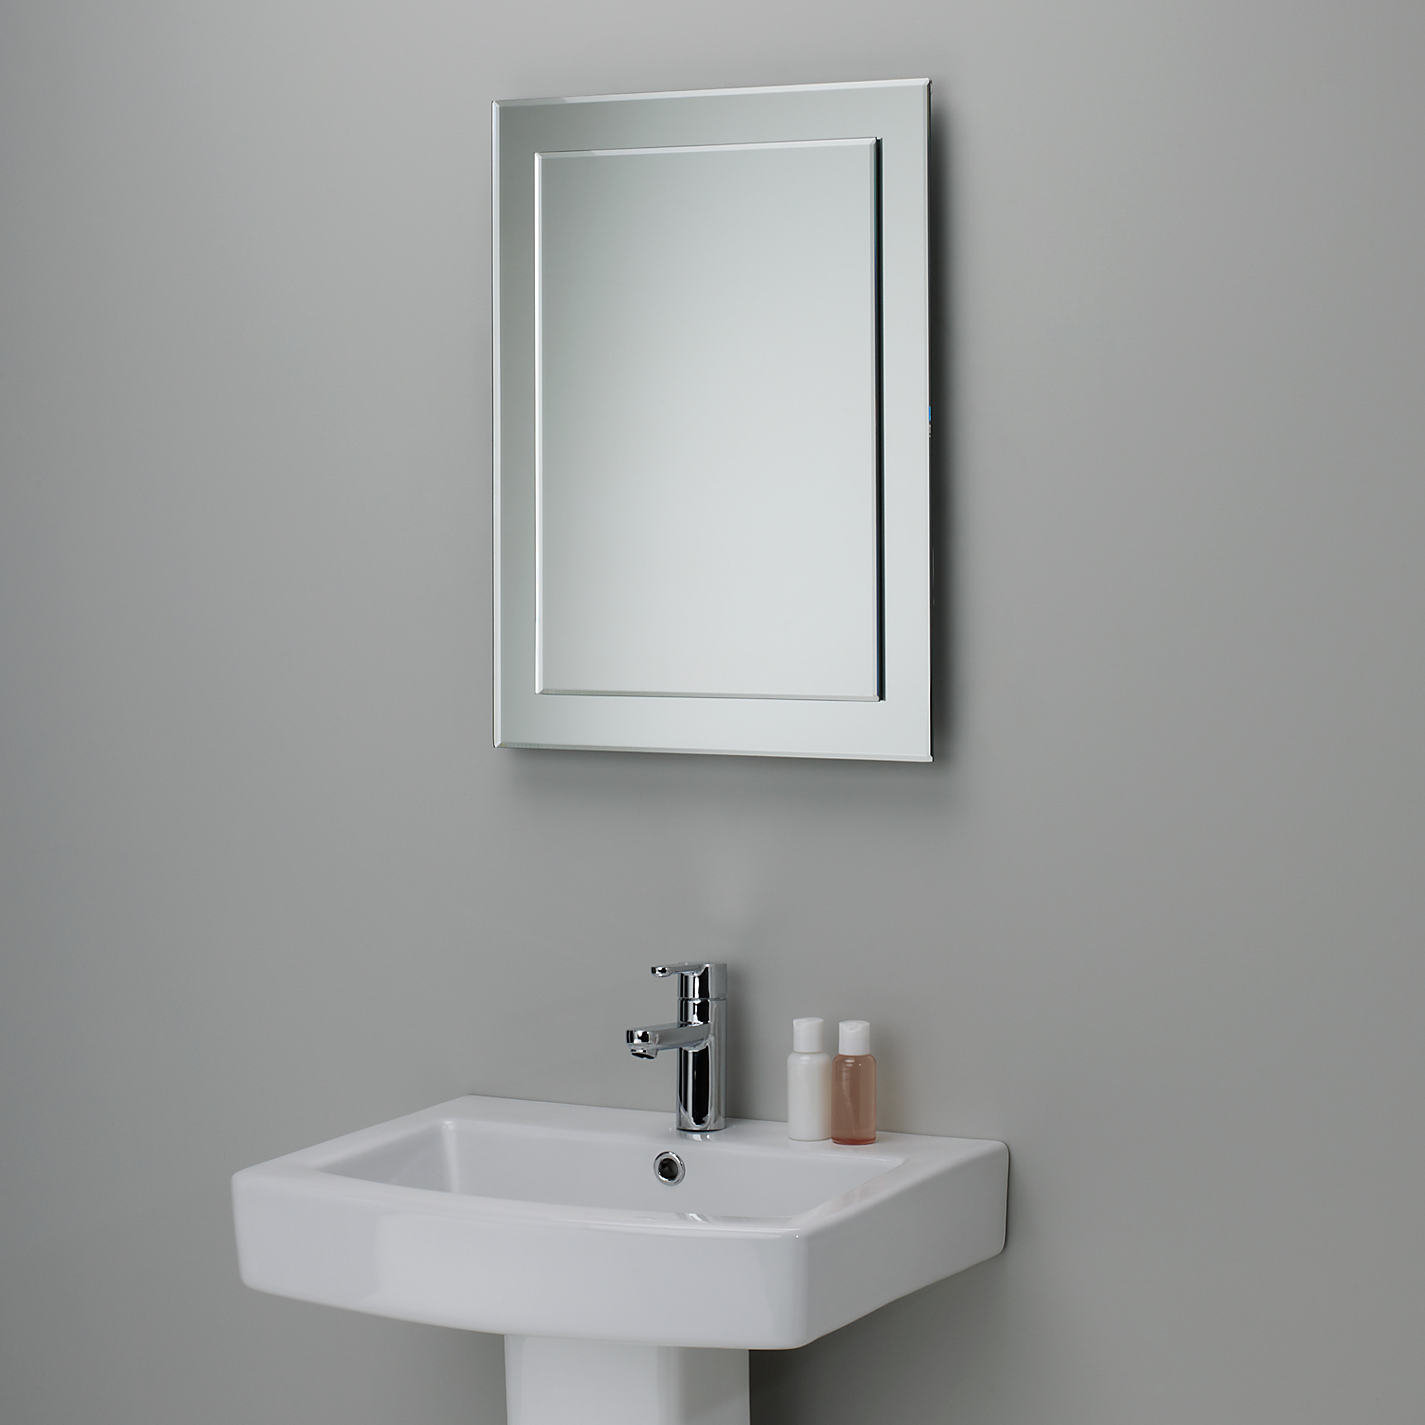 Duo Wall Bathroom Mirror